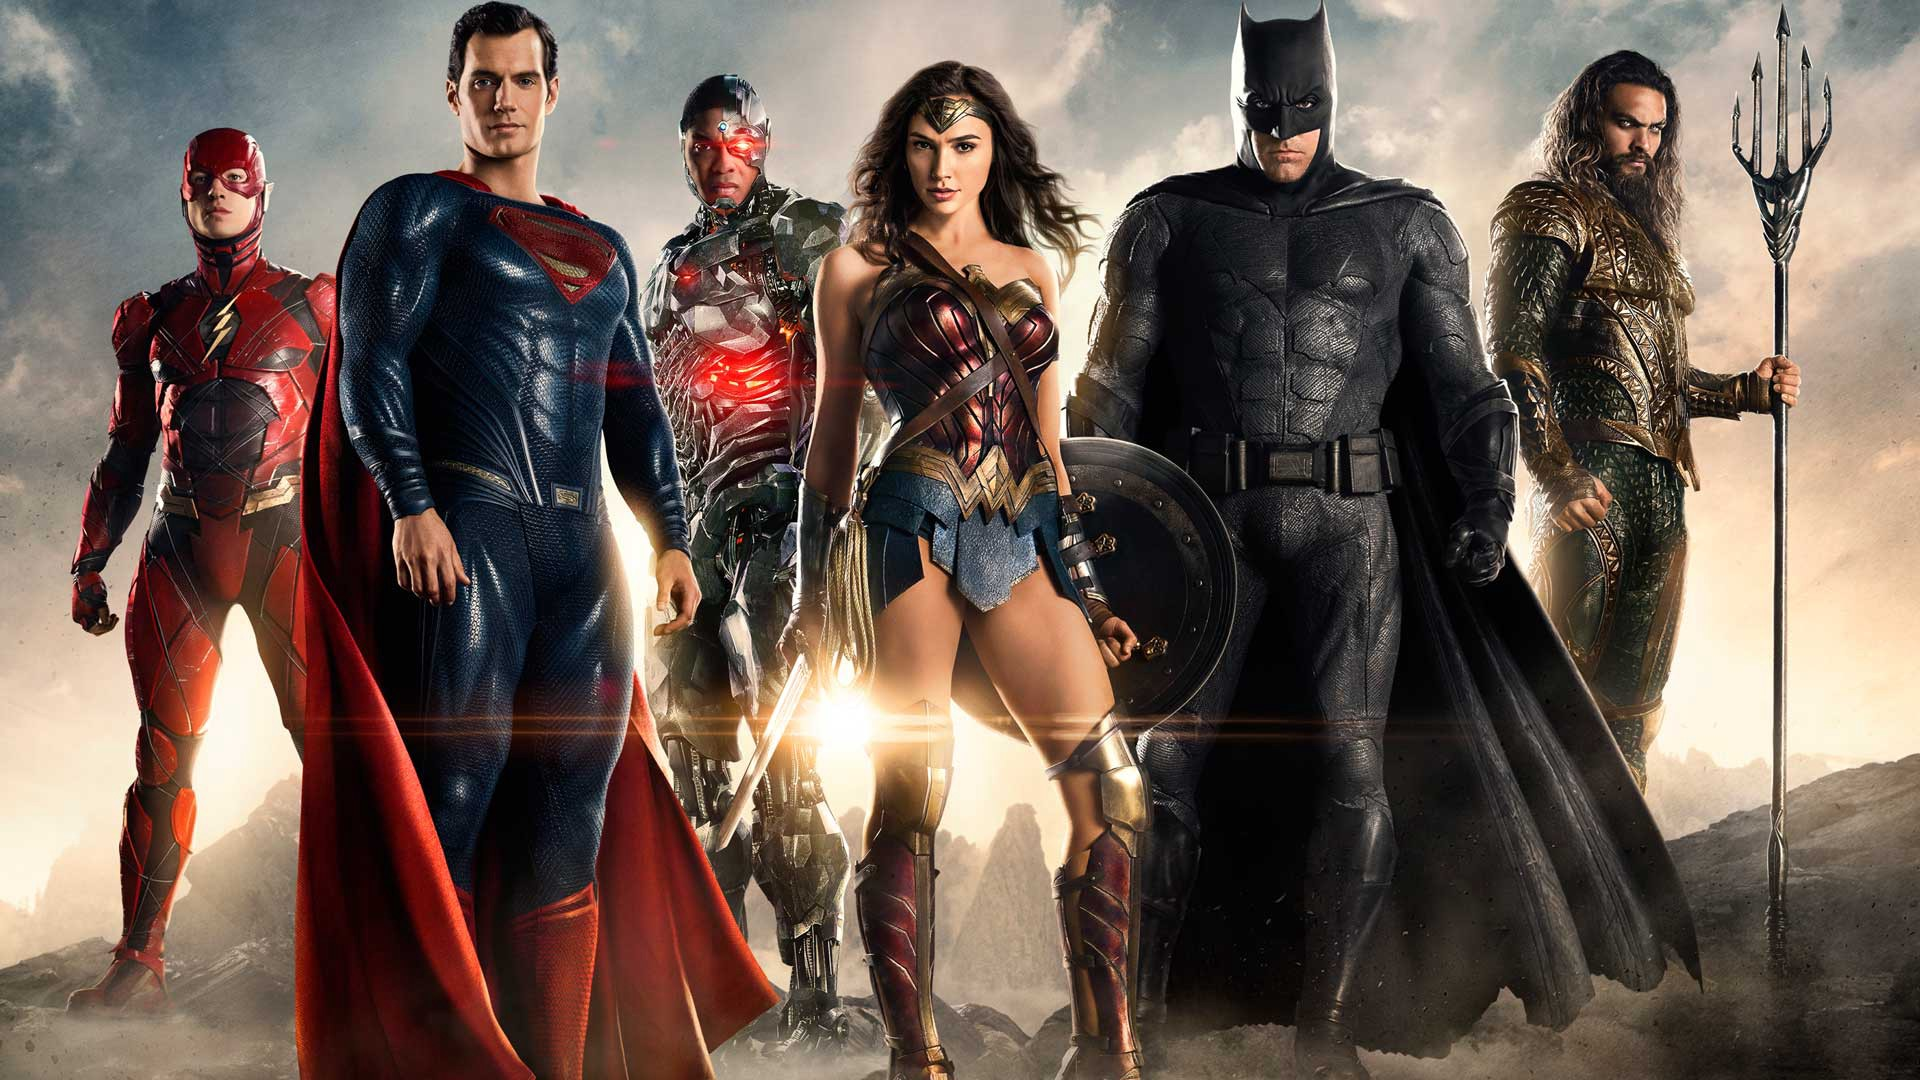 Superhero movies with a heavy fate will be released in 2019 13